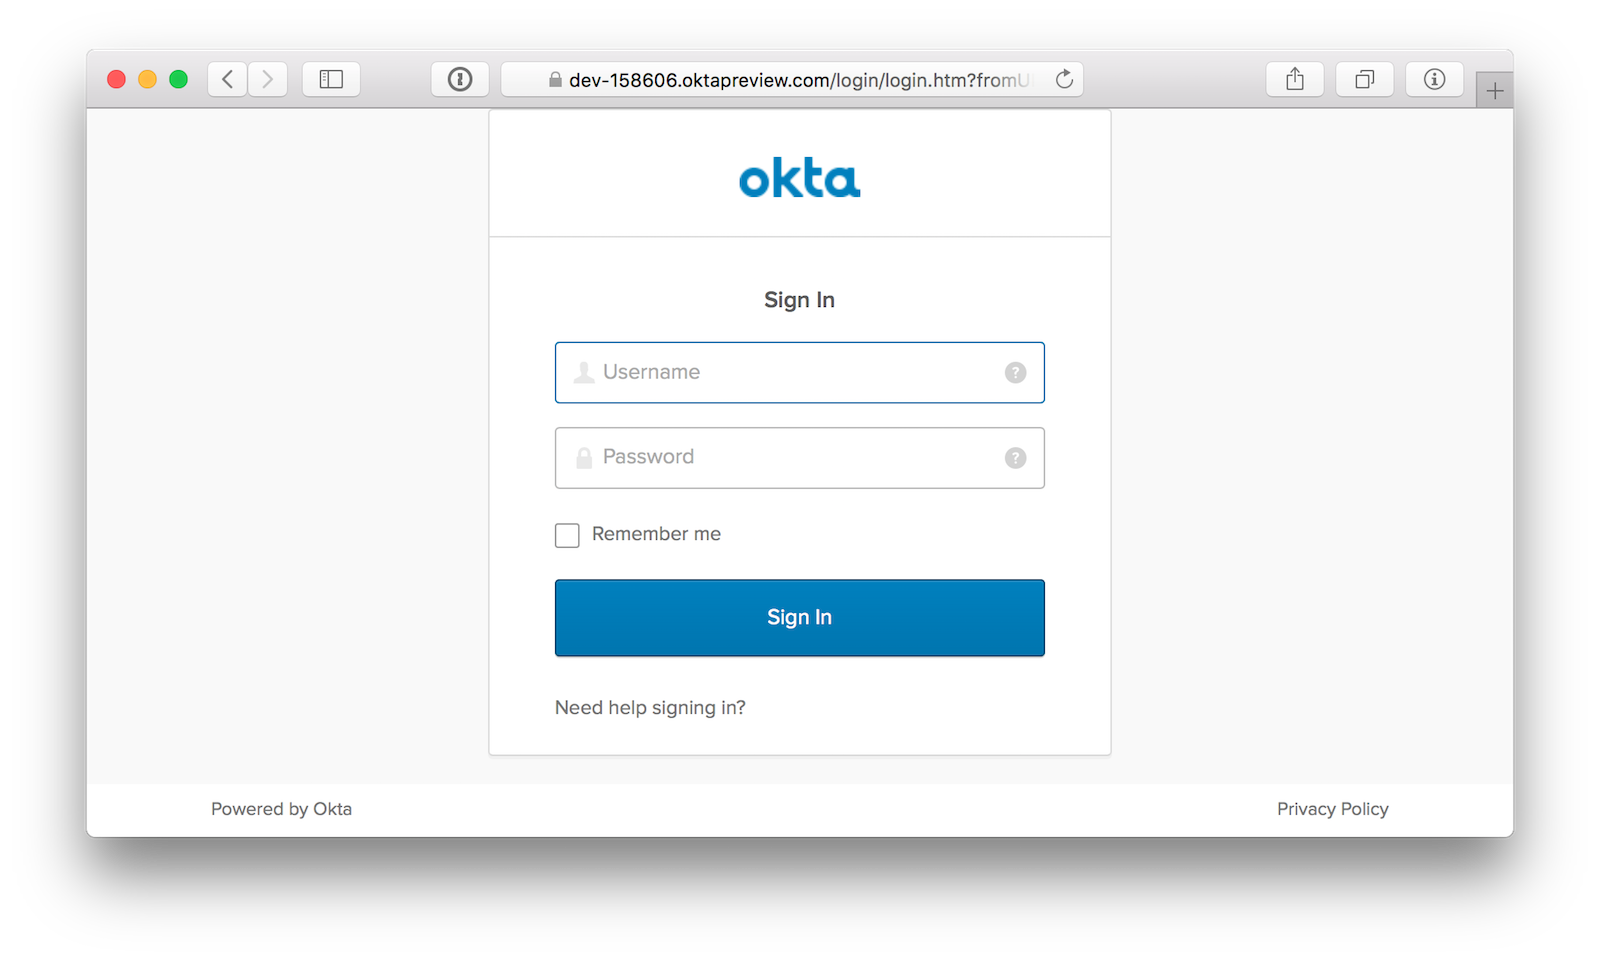 Okta Sign-In Page